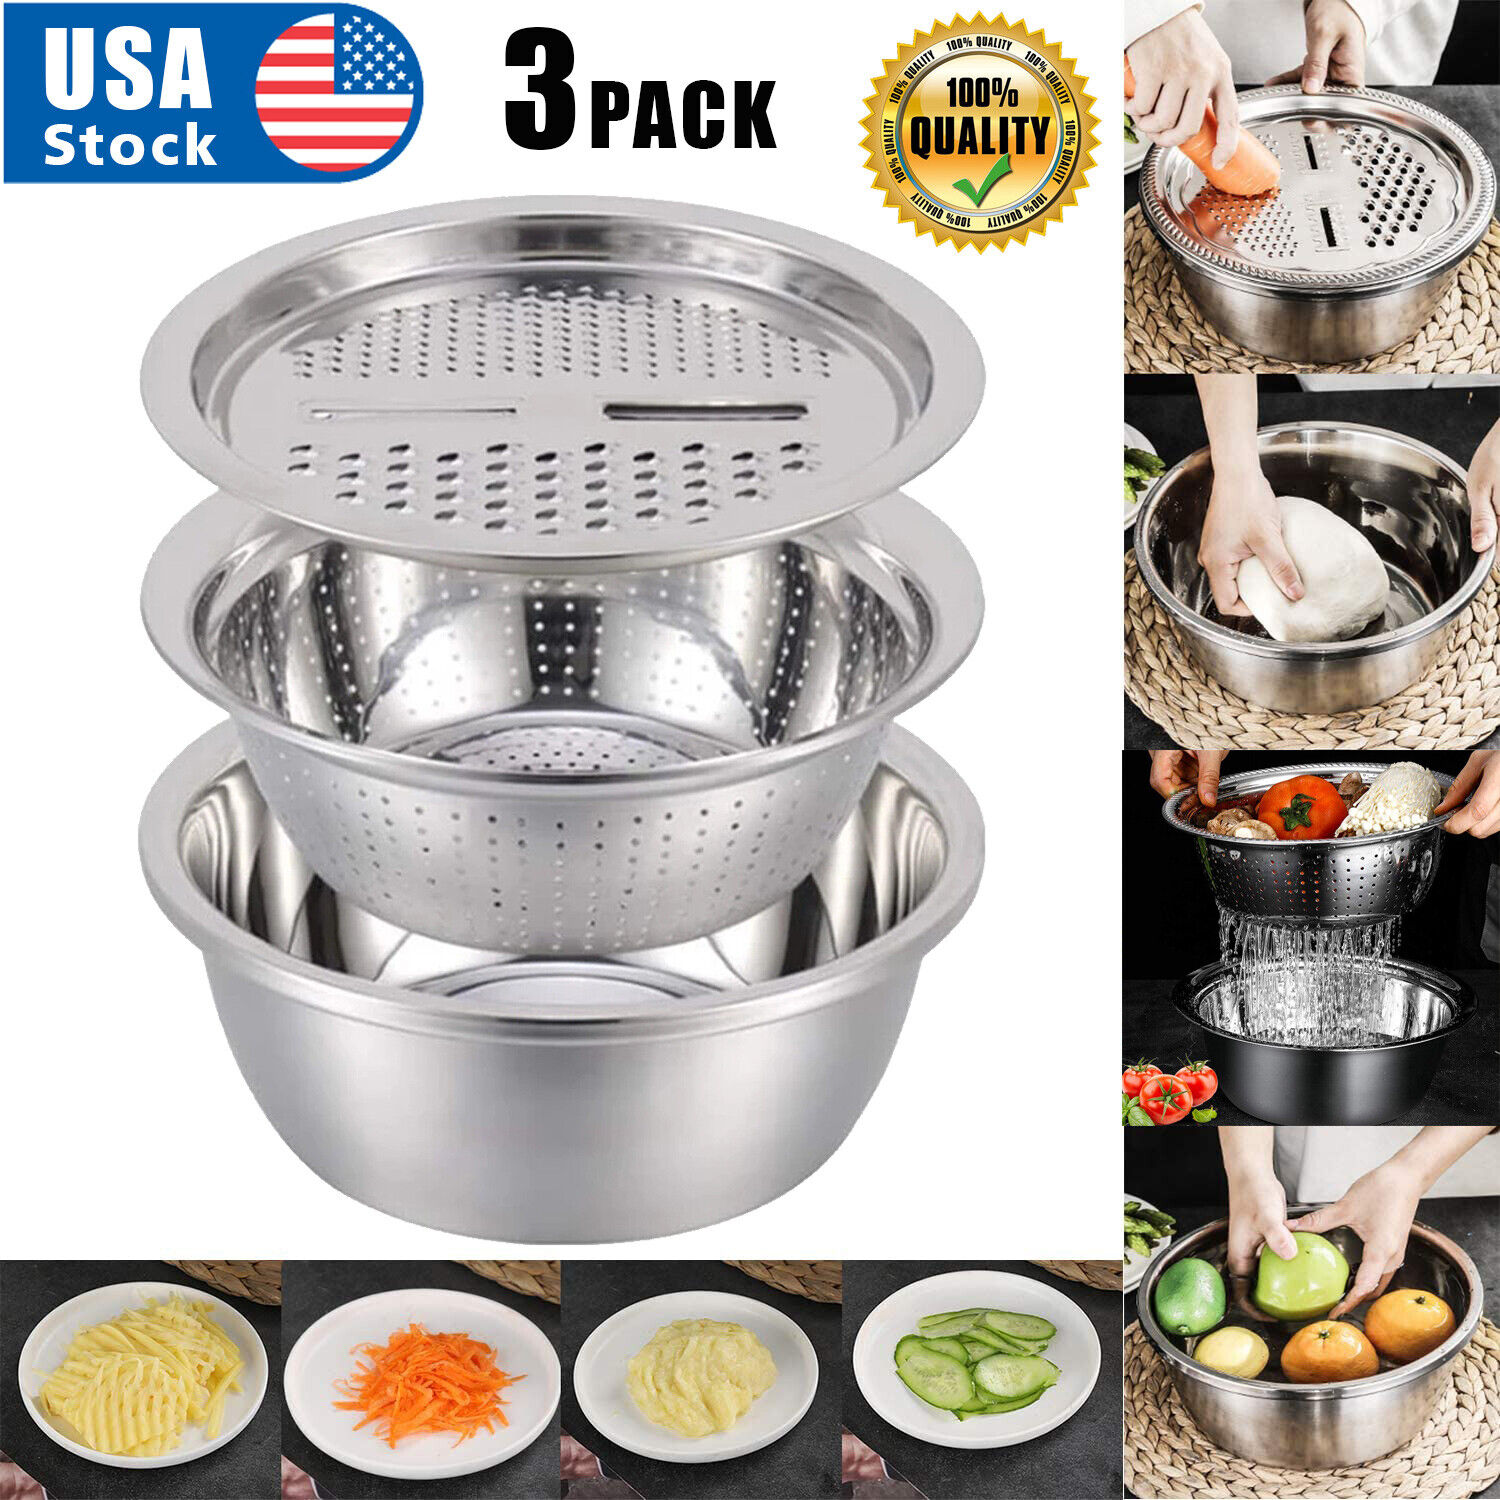 3 Pcs Kitchen Stainless Steel Multi-function Grater Slicer Washing Drain Basin Colanders, Strainers & Sifters